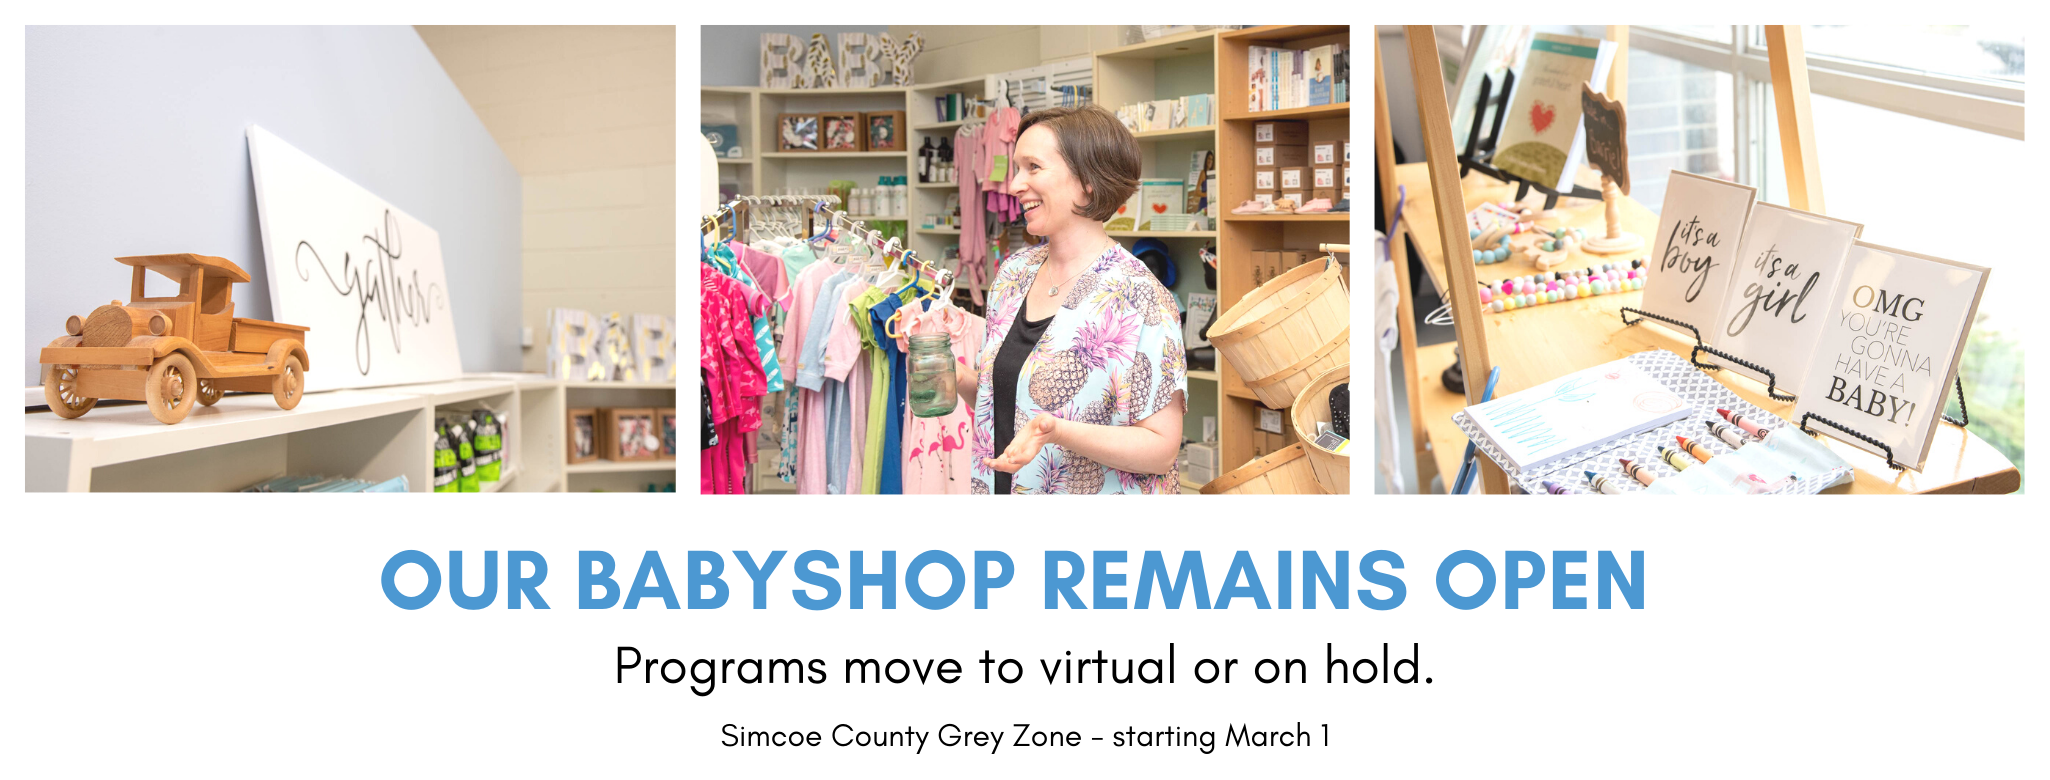 Baby store, prenatal classes, mom and baby classes